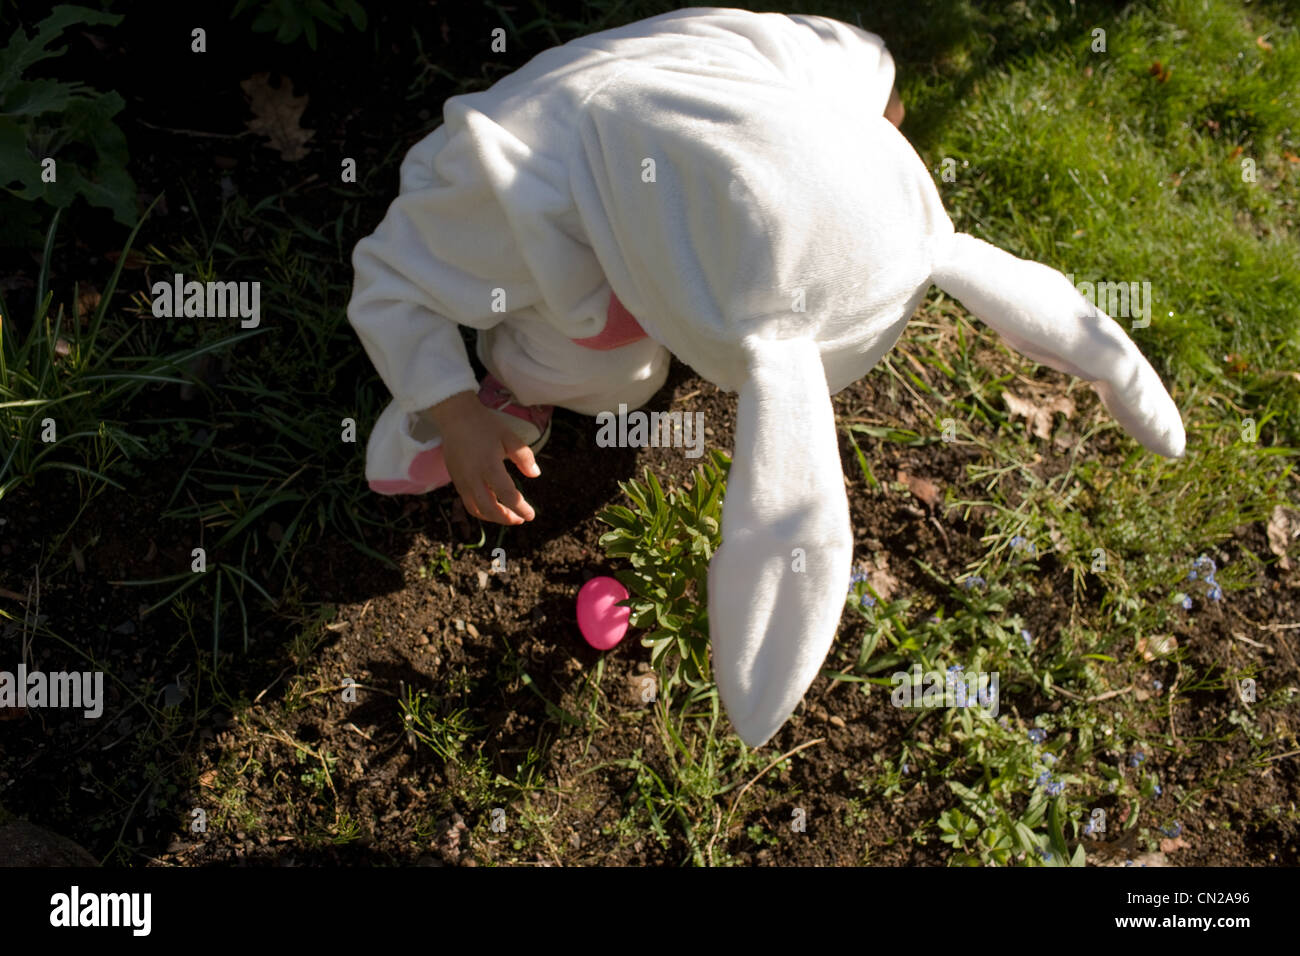 Young boy dressed as Easter bunny, high angle view - Stock Image